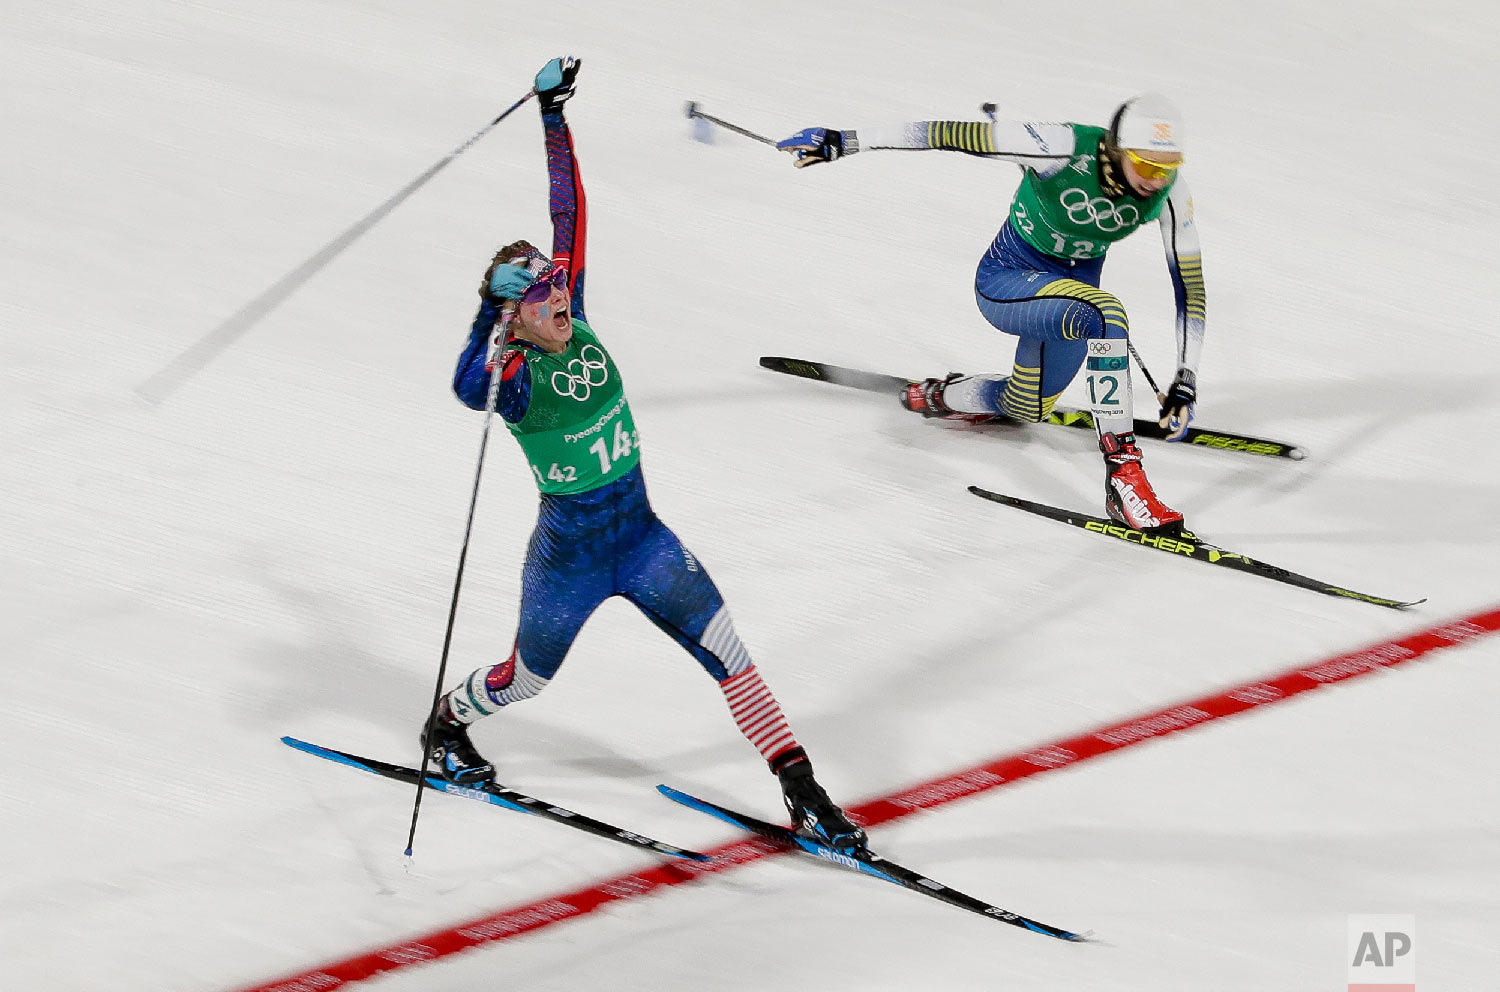 Jessica Diggins, left, of the United States, celebrates after winning the gold medal.